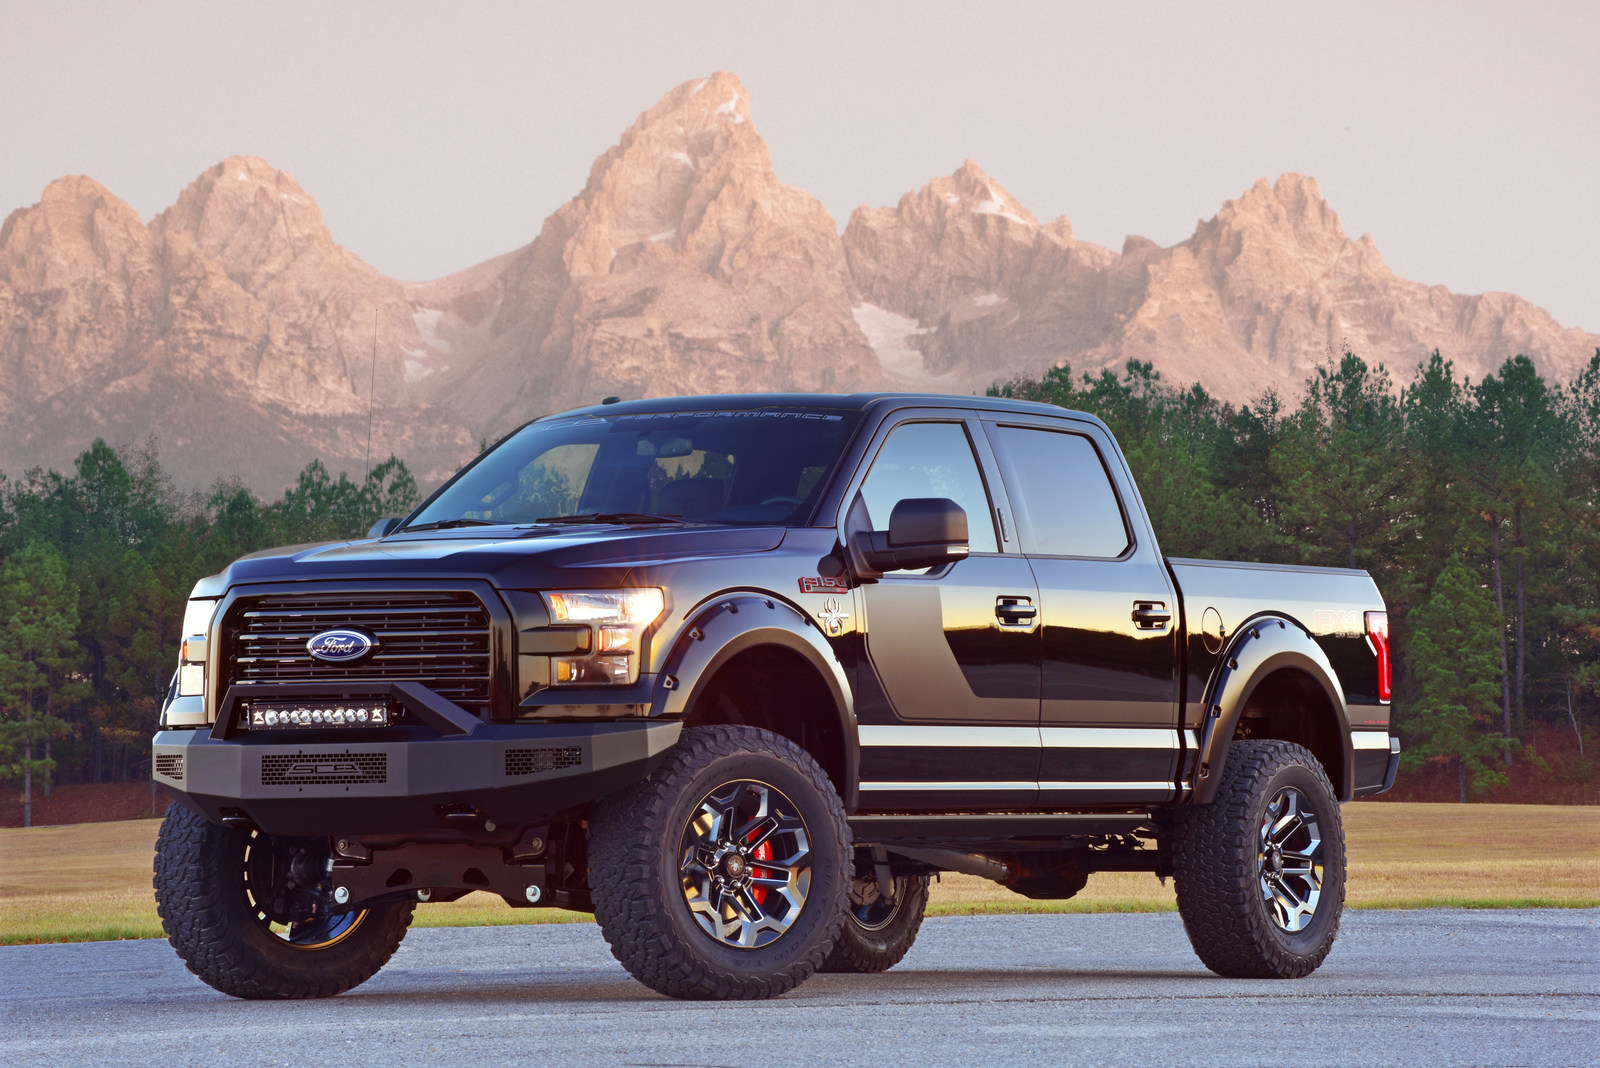 ford raptor vs ram rebel html with 2018 Ford Black Widow on 80801 further 2018 1500 likewise Msg0222484911572 besides Showthread additionally Part 3 Whats The Diff Ford F150 Svt Raptor Vs Dodge Ram Power Wagon.